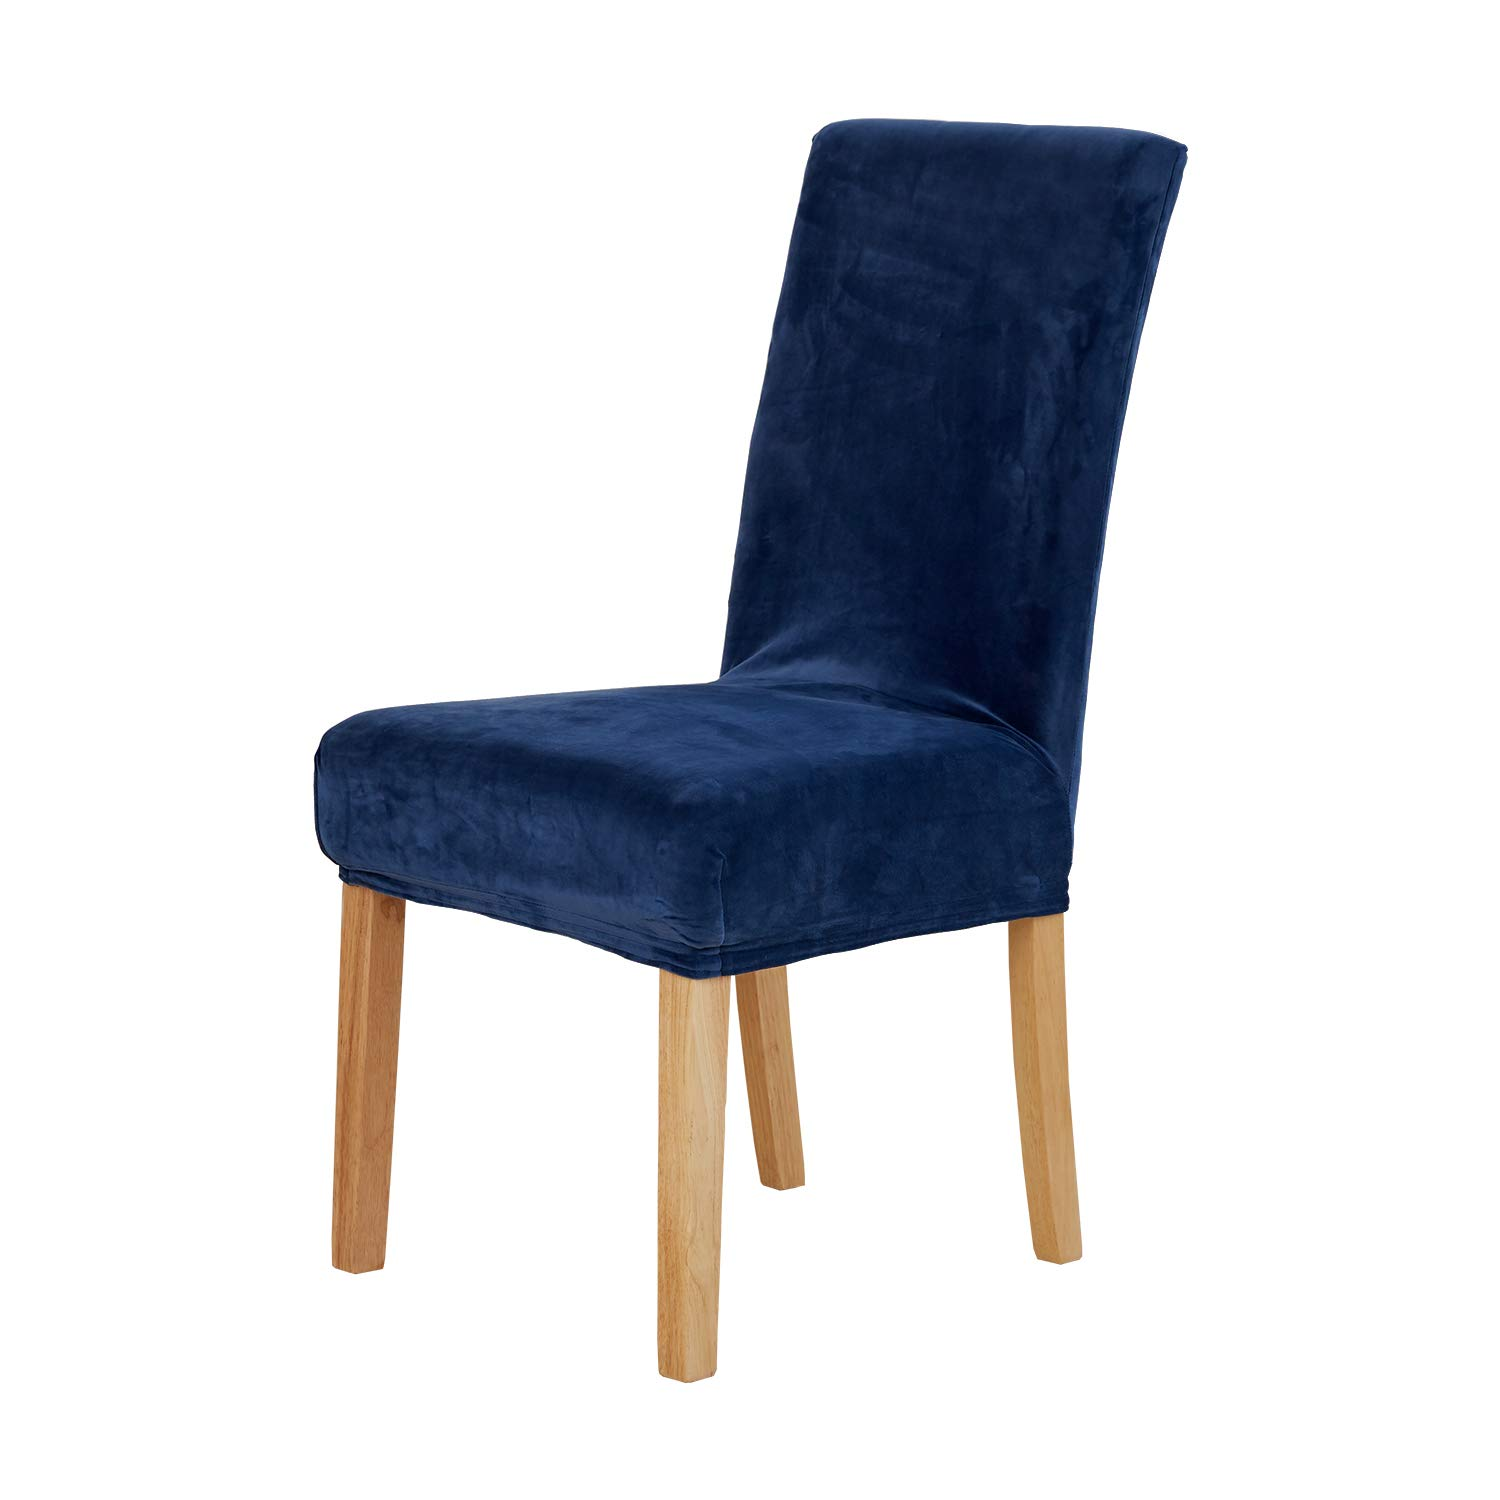 Amazon Com Deconovo Universal Dining Chair Covers Strench Navy Blue